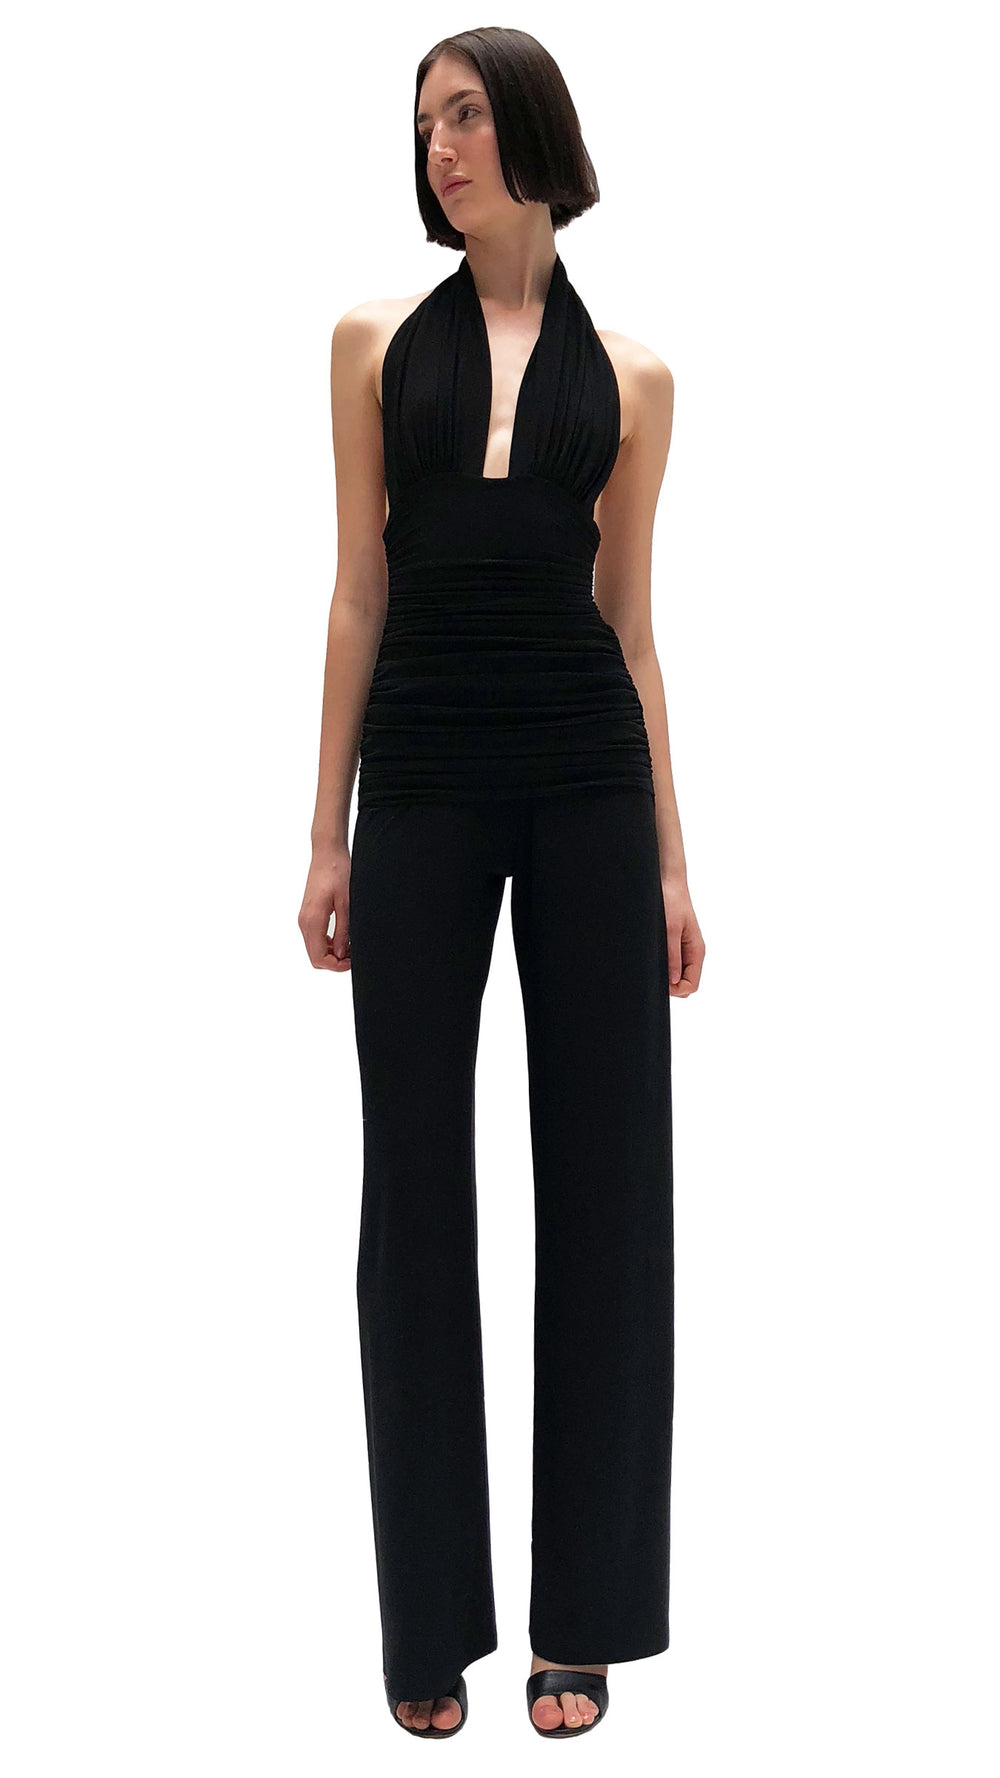 HALTER BILL JUMPSUIT - 1